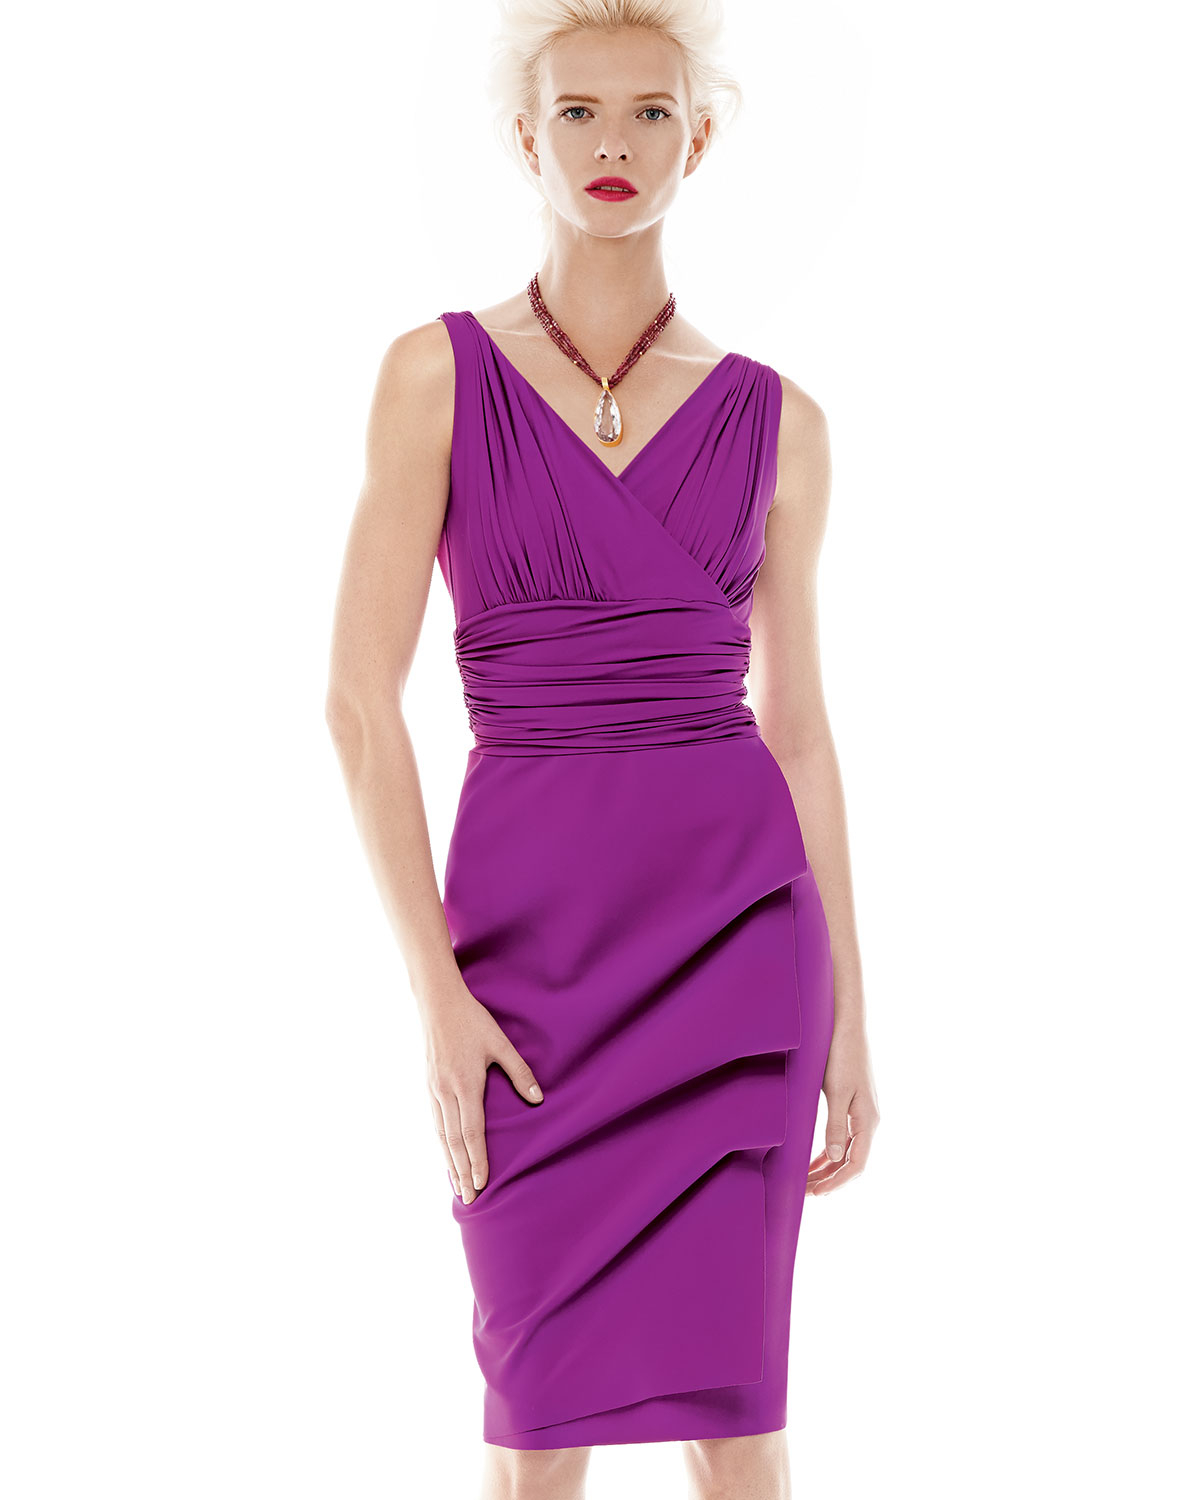 Chiara Boni The Most Popular Dress In America: La Petite Robe Di Chiara Boni Becky Sleeveless